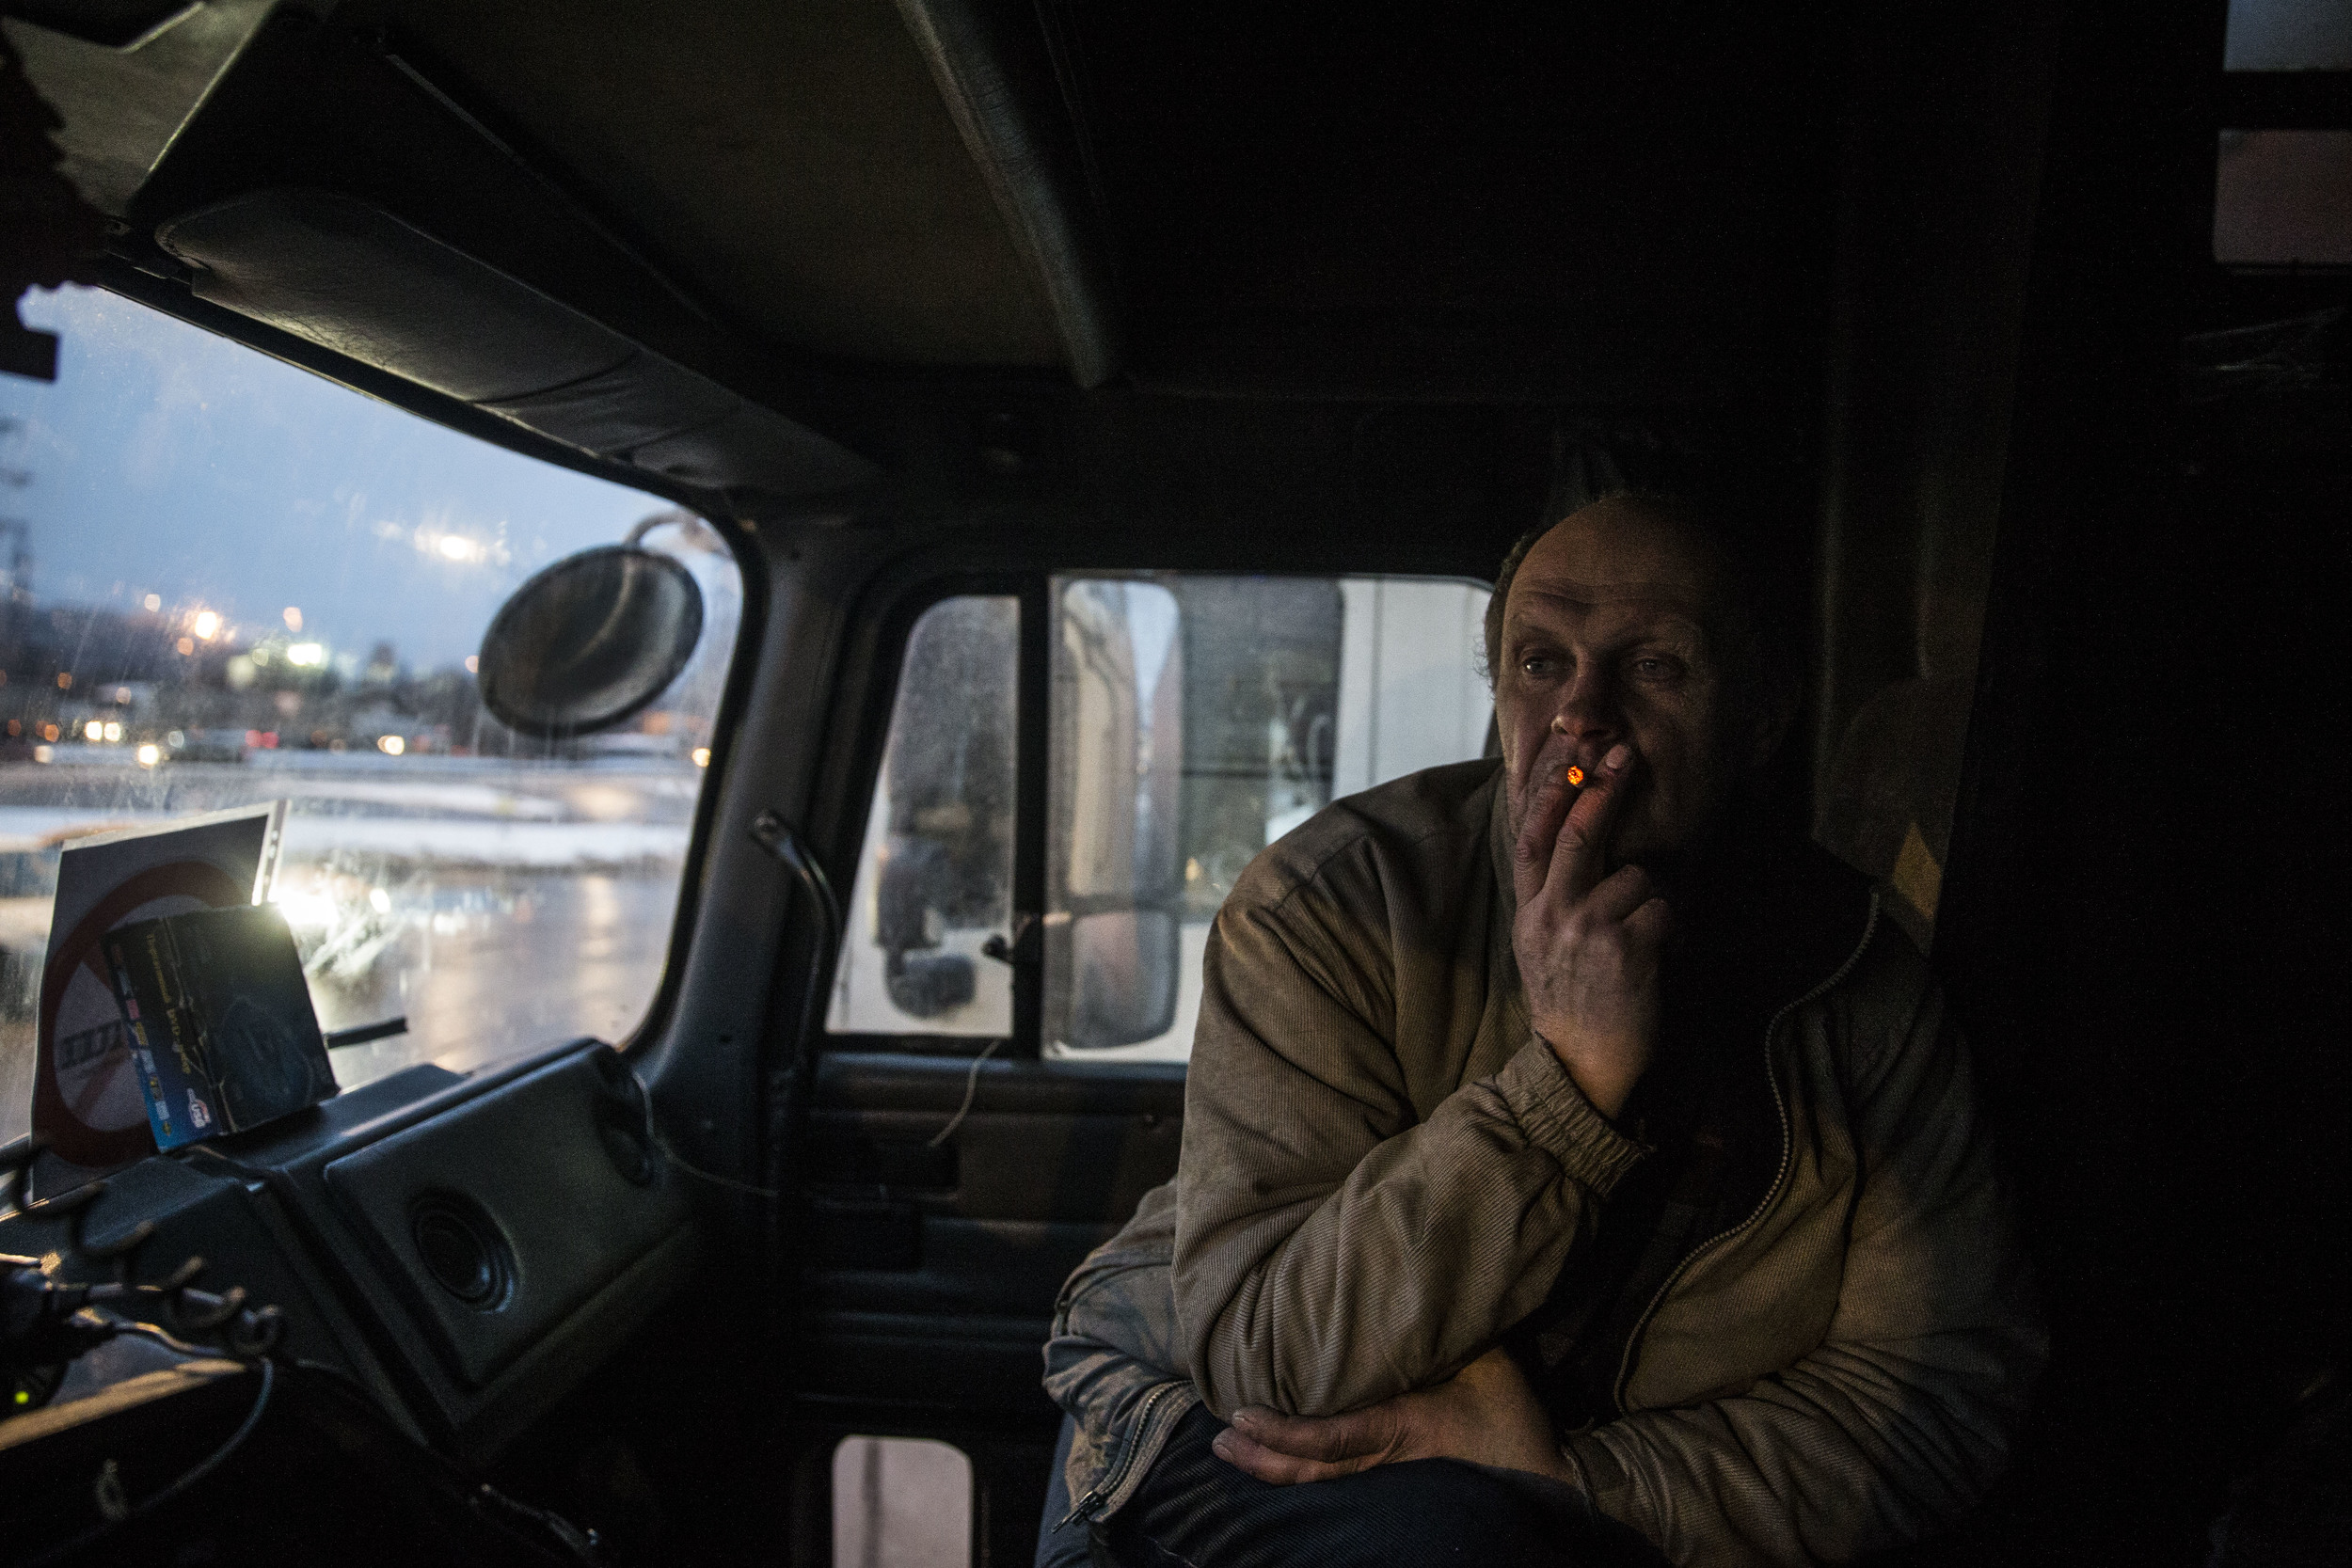 A truck driver smokes as he participates in a strike against new tax on his business. December 2015